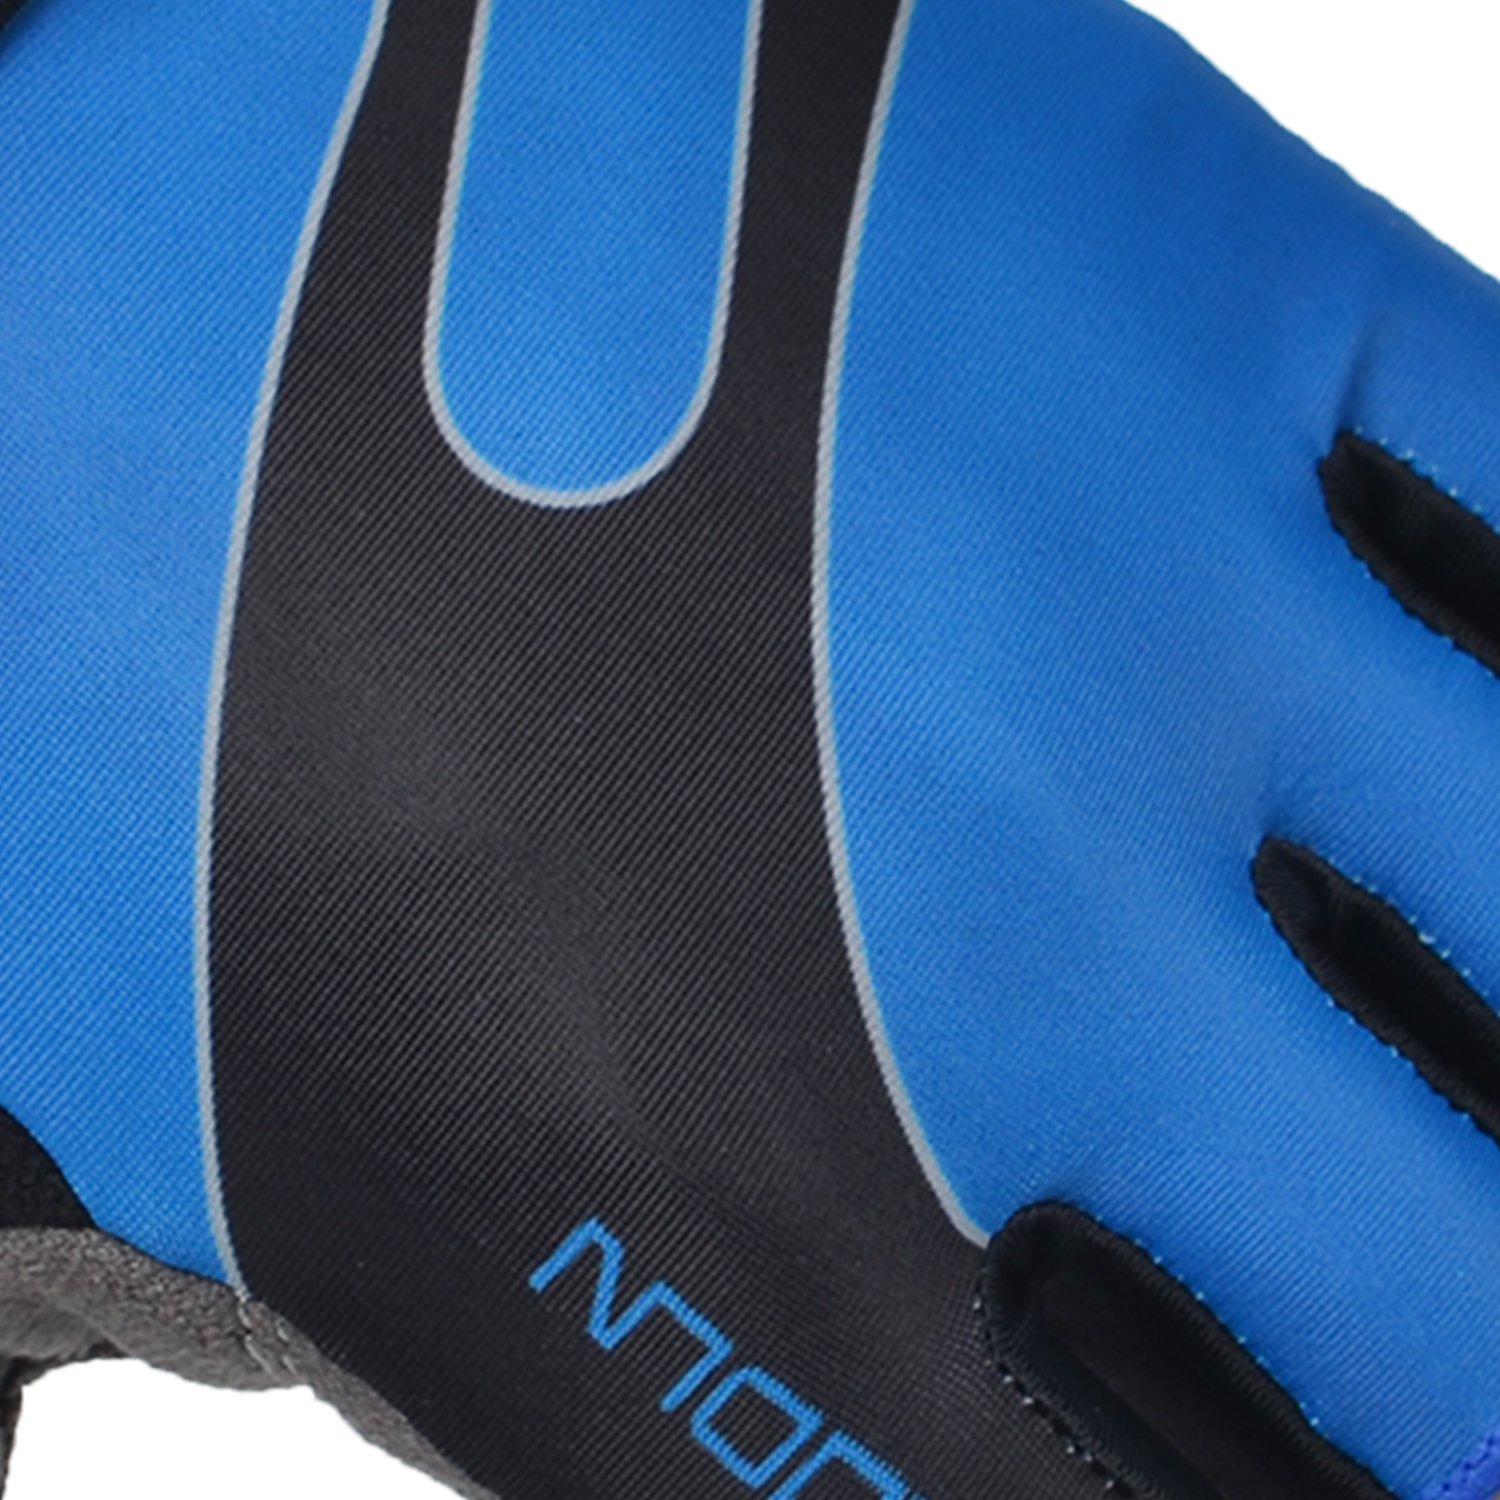 Alioth Star Cycling Gloves men women half finger foam padded mountain road bicycle race breathable summer gloves